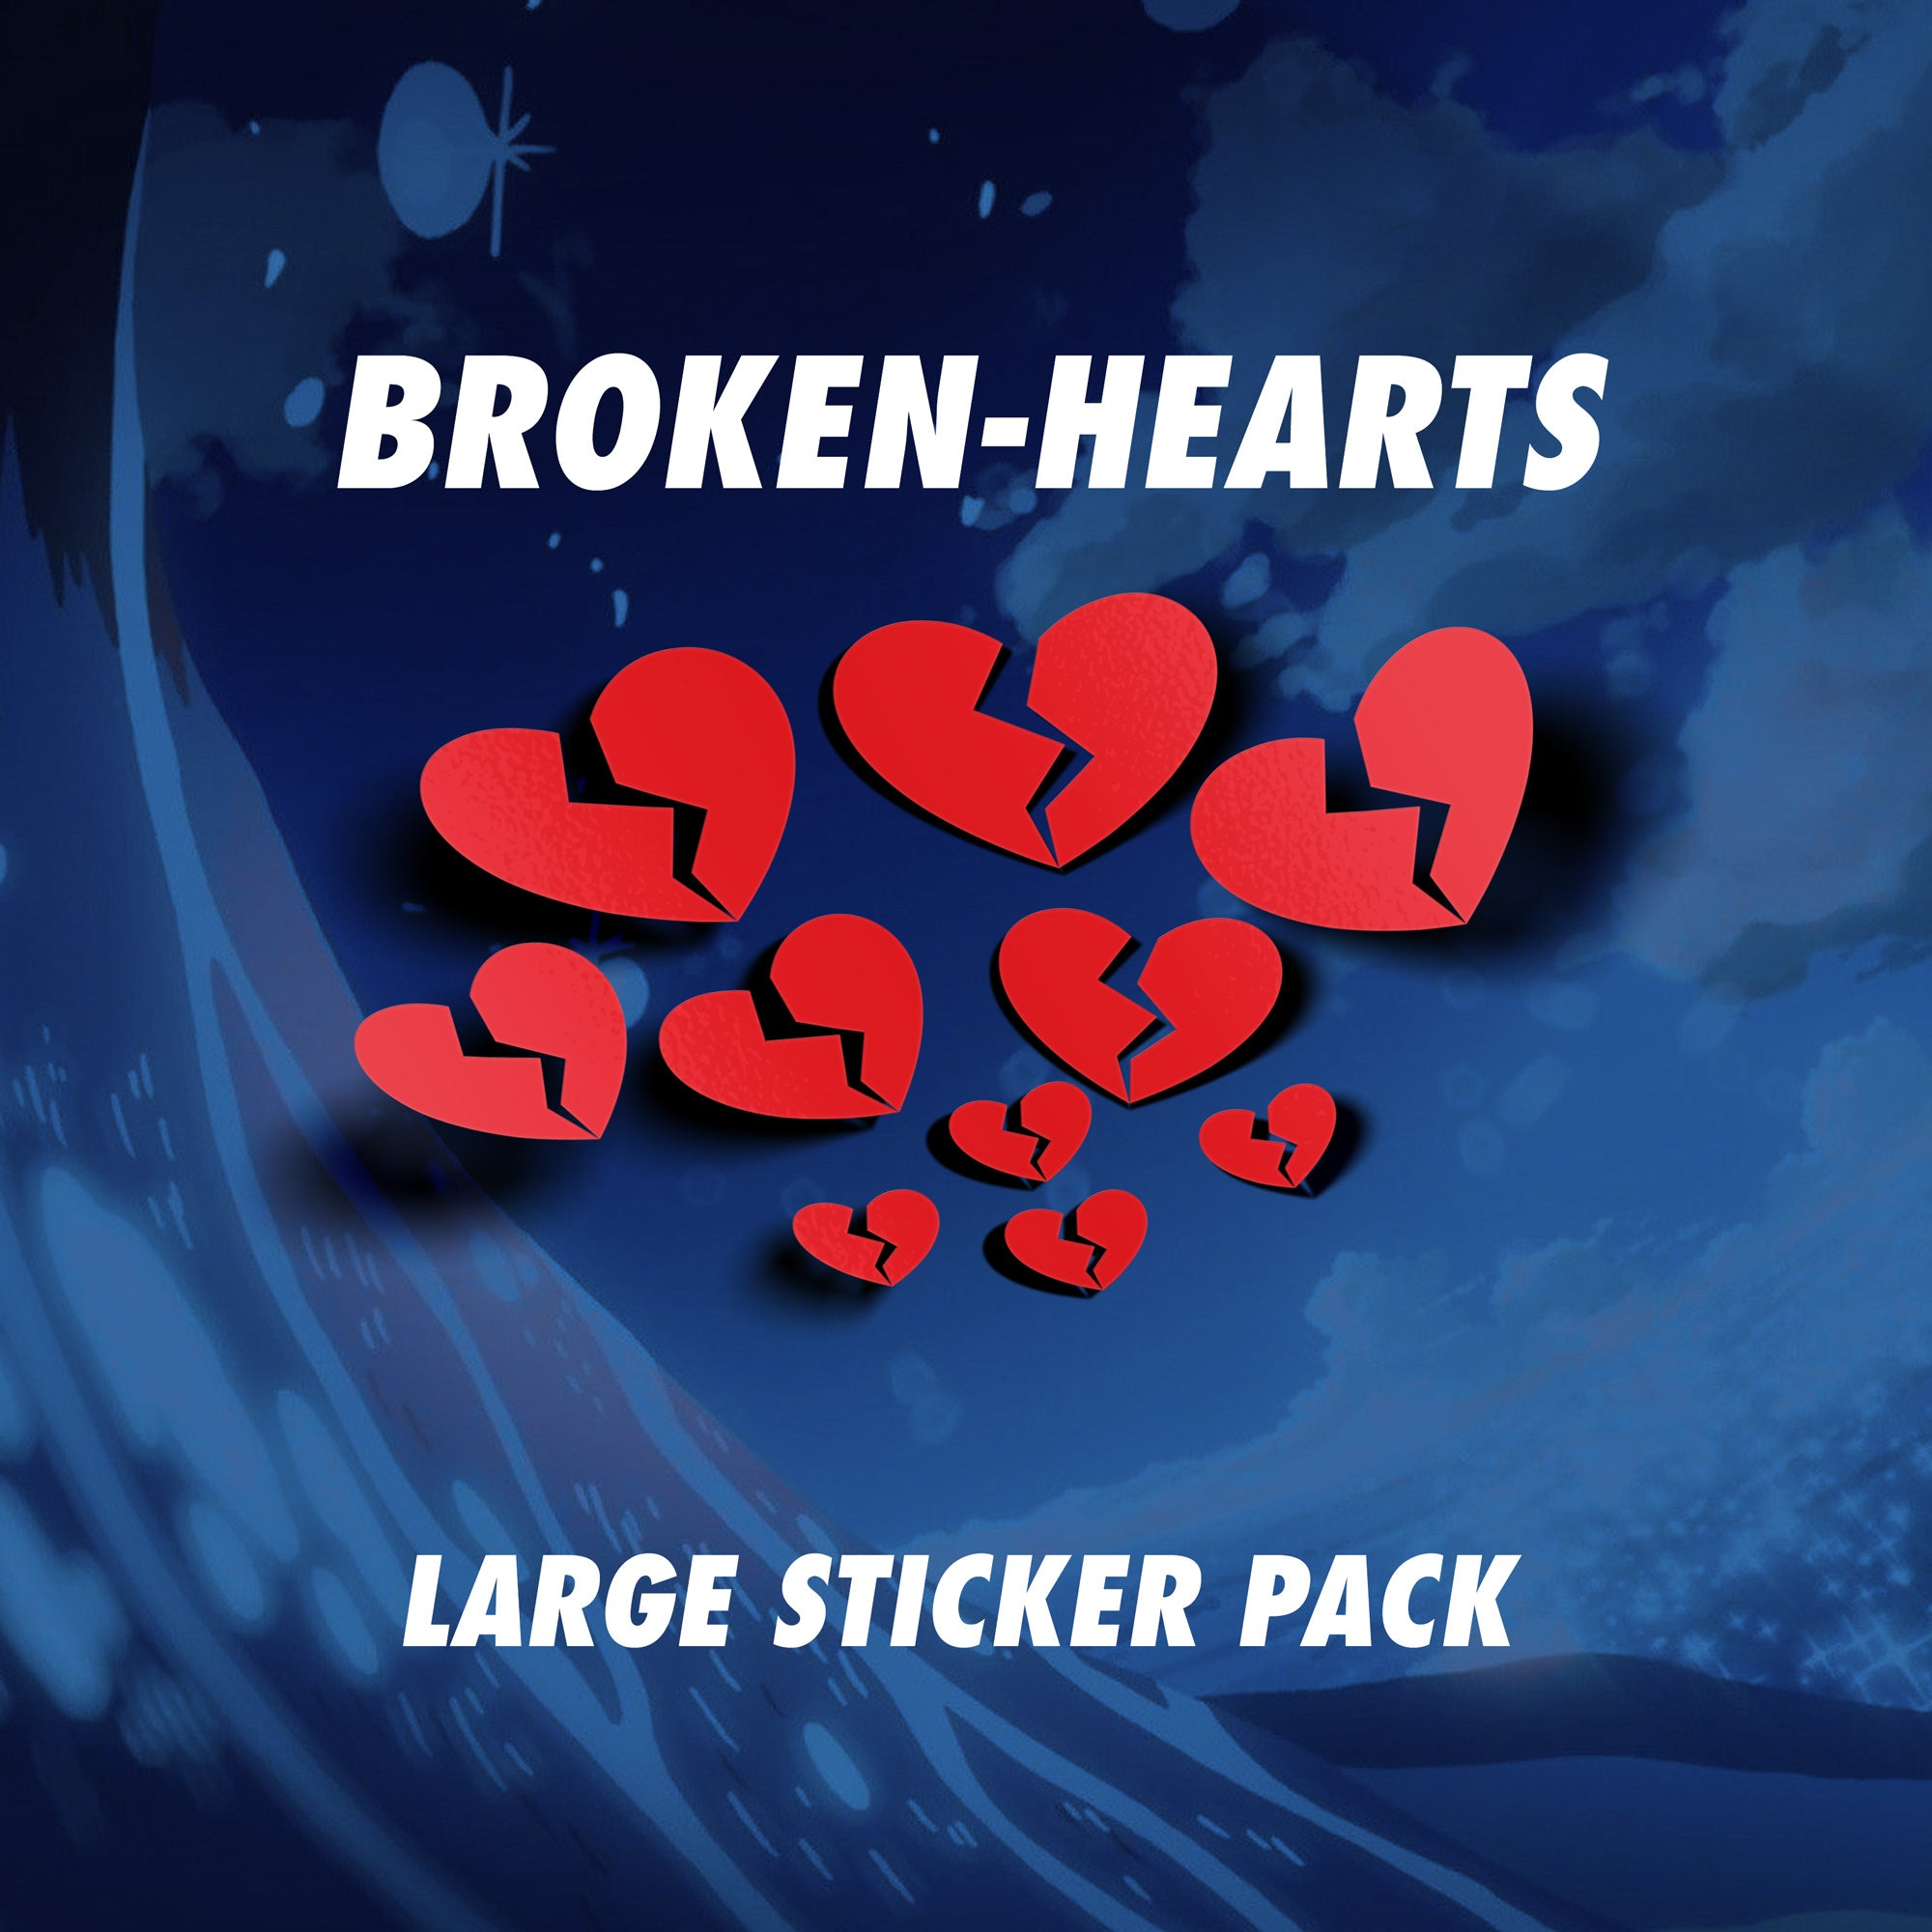 Large Broken Hearts Livery Sticker Pack - VINYL HOUZE